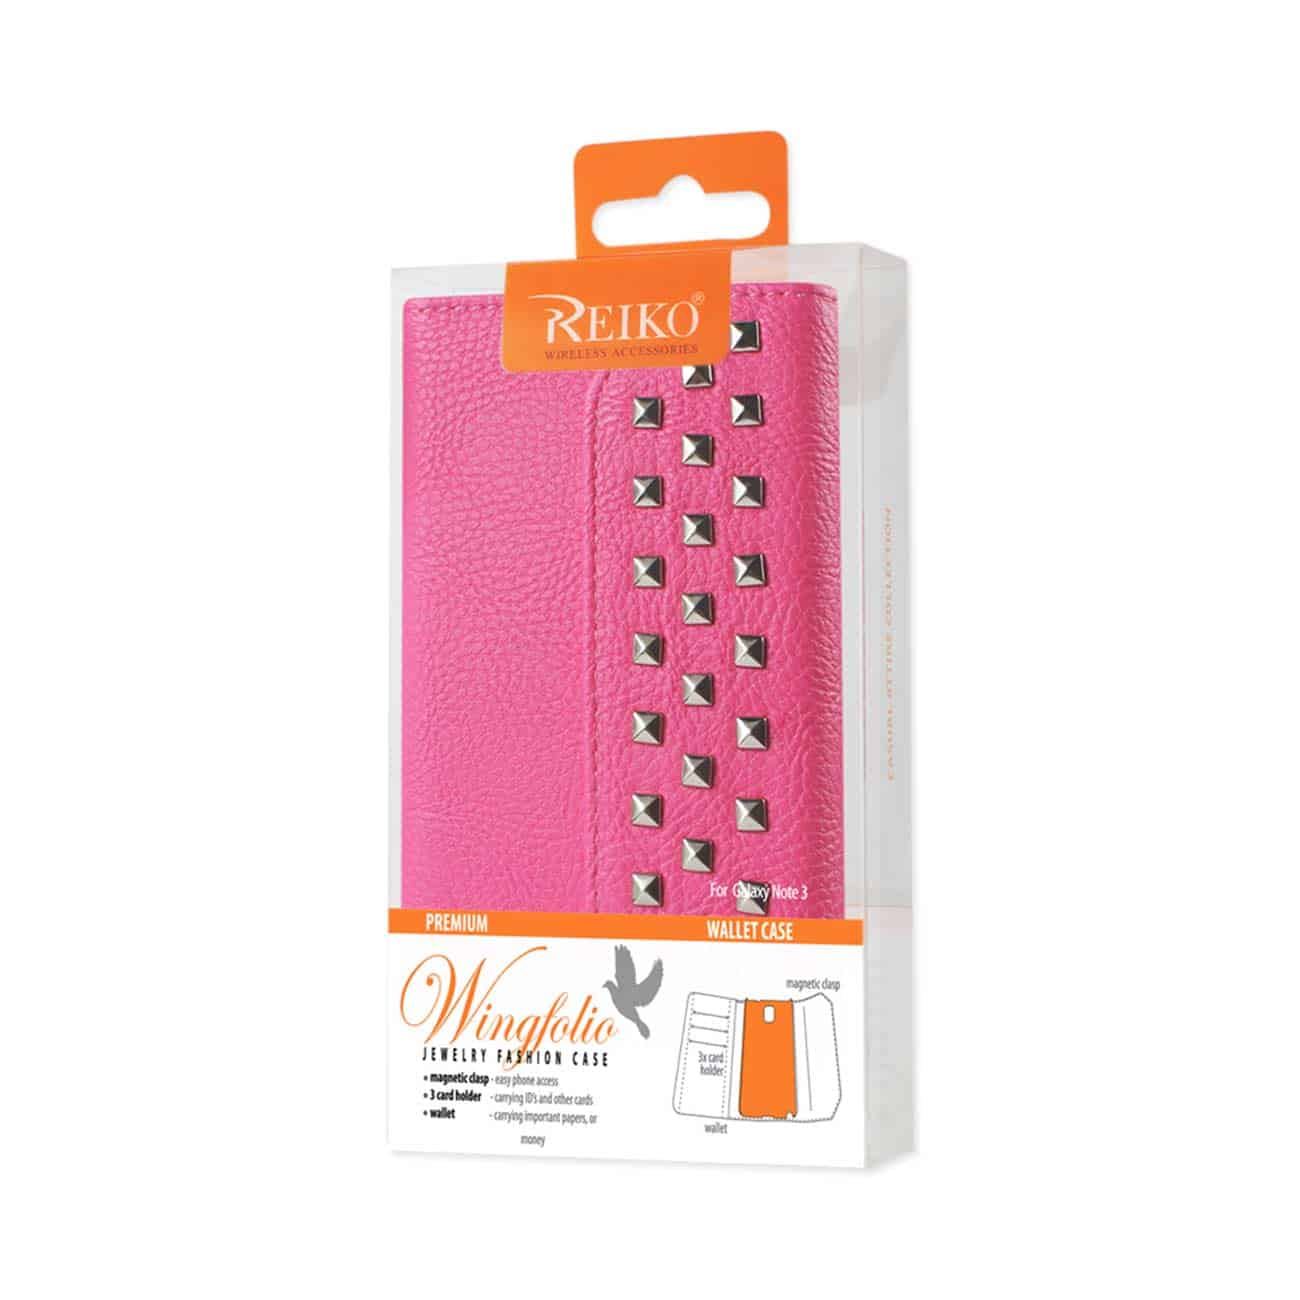 SAMSUNG GALAXY NOTE 3 STUDS WALLET CASE IN HOT PINK